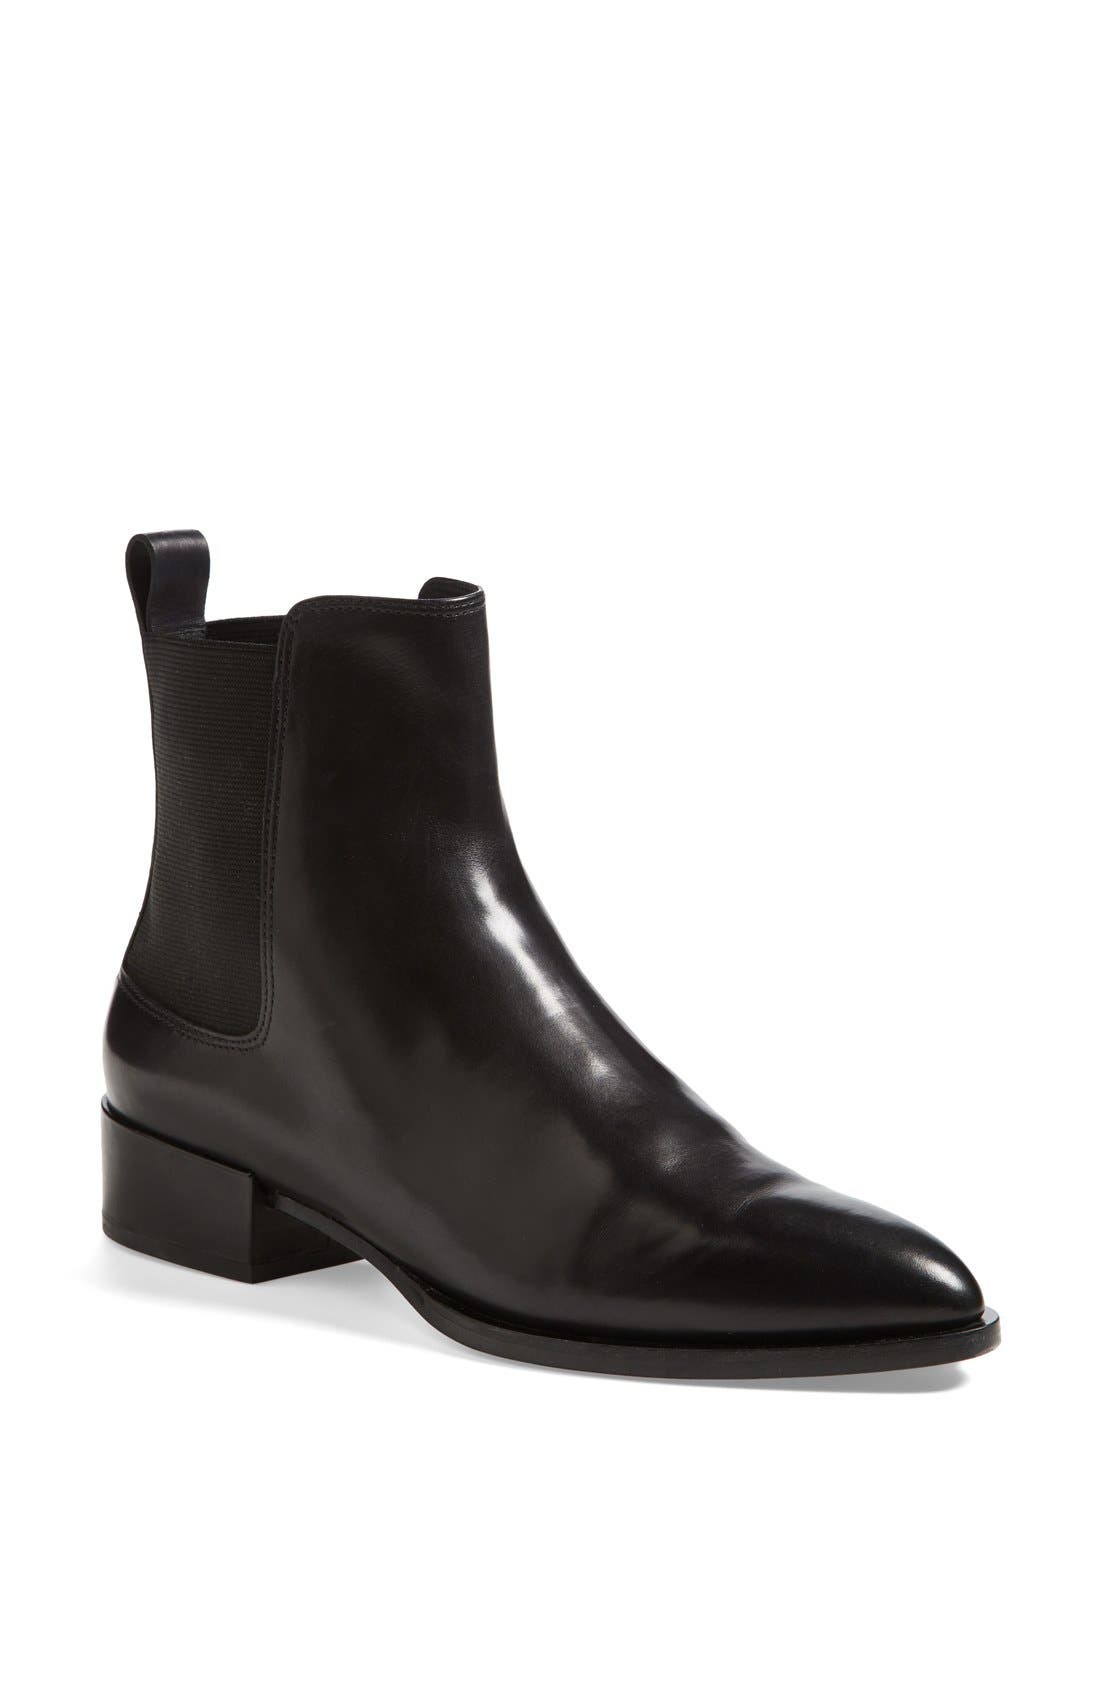 Alternate Image 1 Selected - Vince 'Yarmon' Almond Toe Calfskin Leather Chelsea Boot